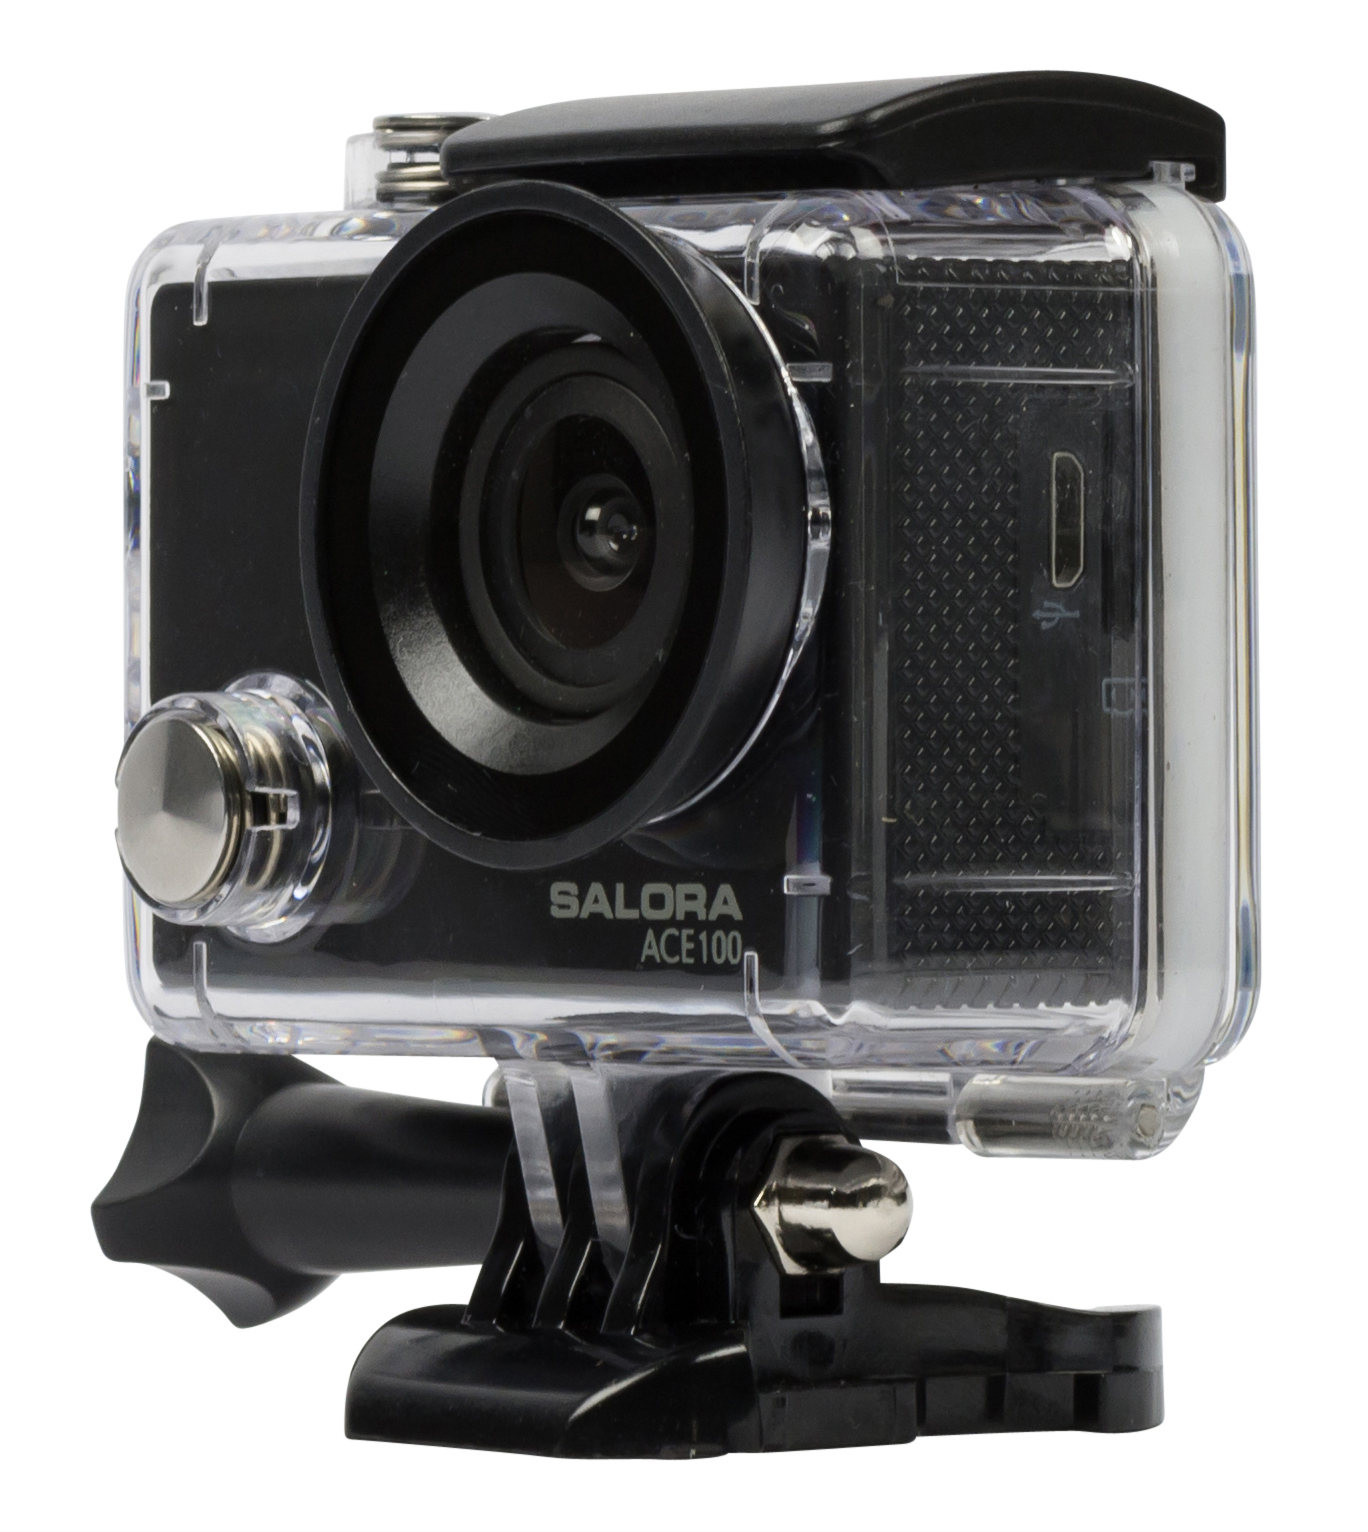 "ACE100, Full HD actioncam, 5.08 cm (2.0"" display)"